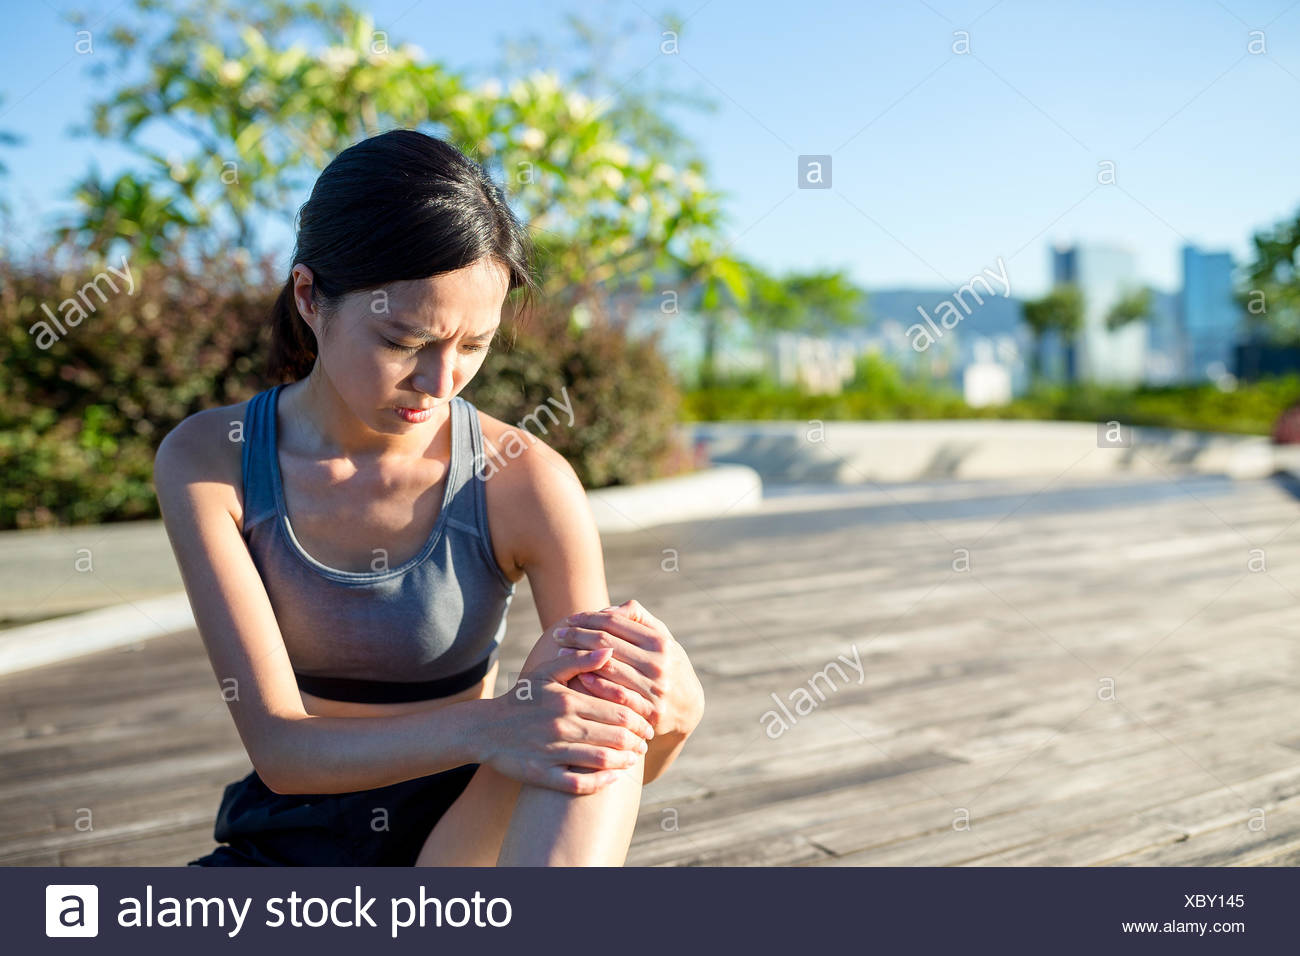 Woman holding painful ankle at park - Stock Image